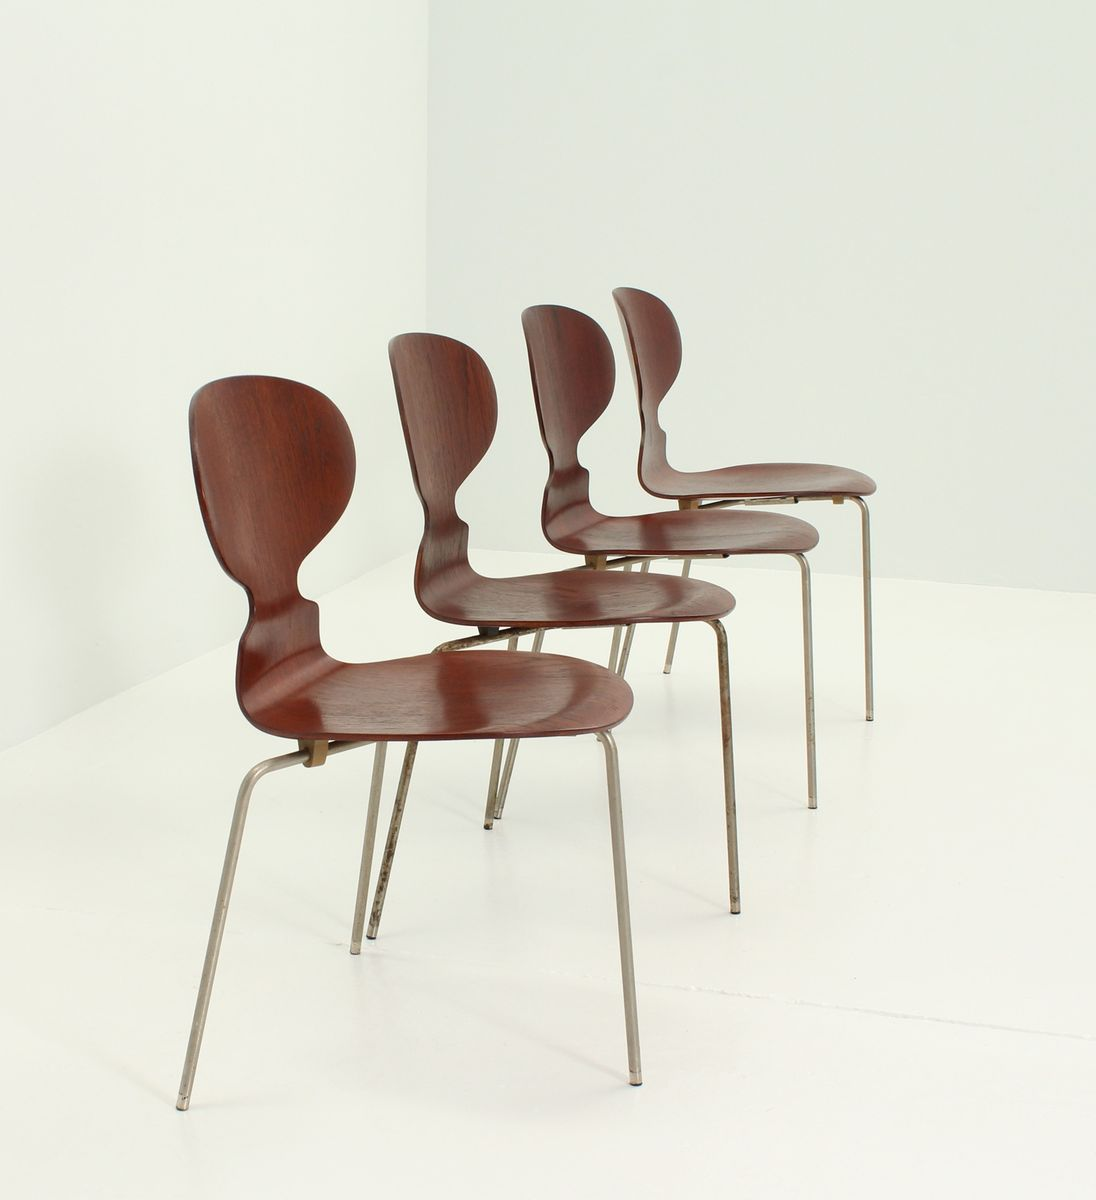 early ant chairs by arne jacobsen for fritz hansen 1950s set of 4 for sale at pamono. Black Bedroom Furniture Sets. Home Design Ideas